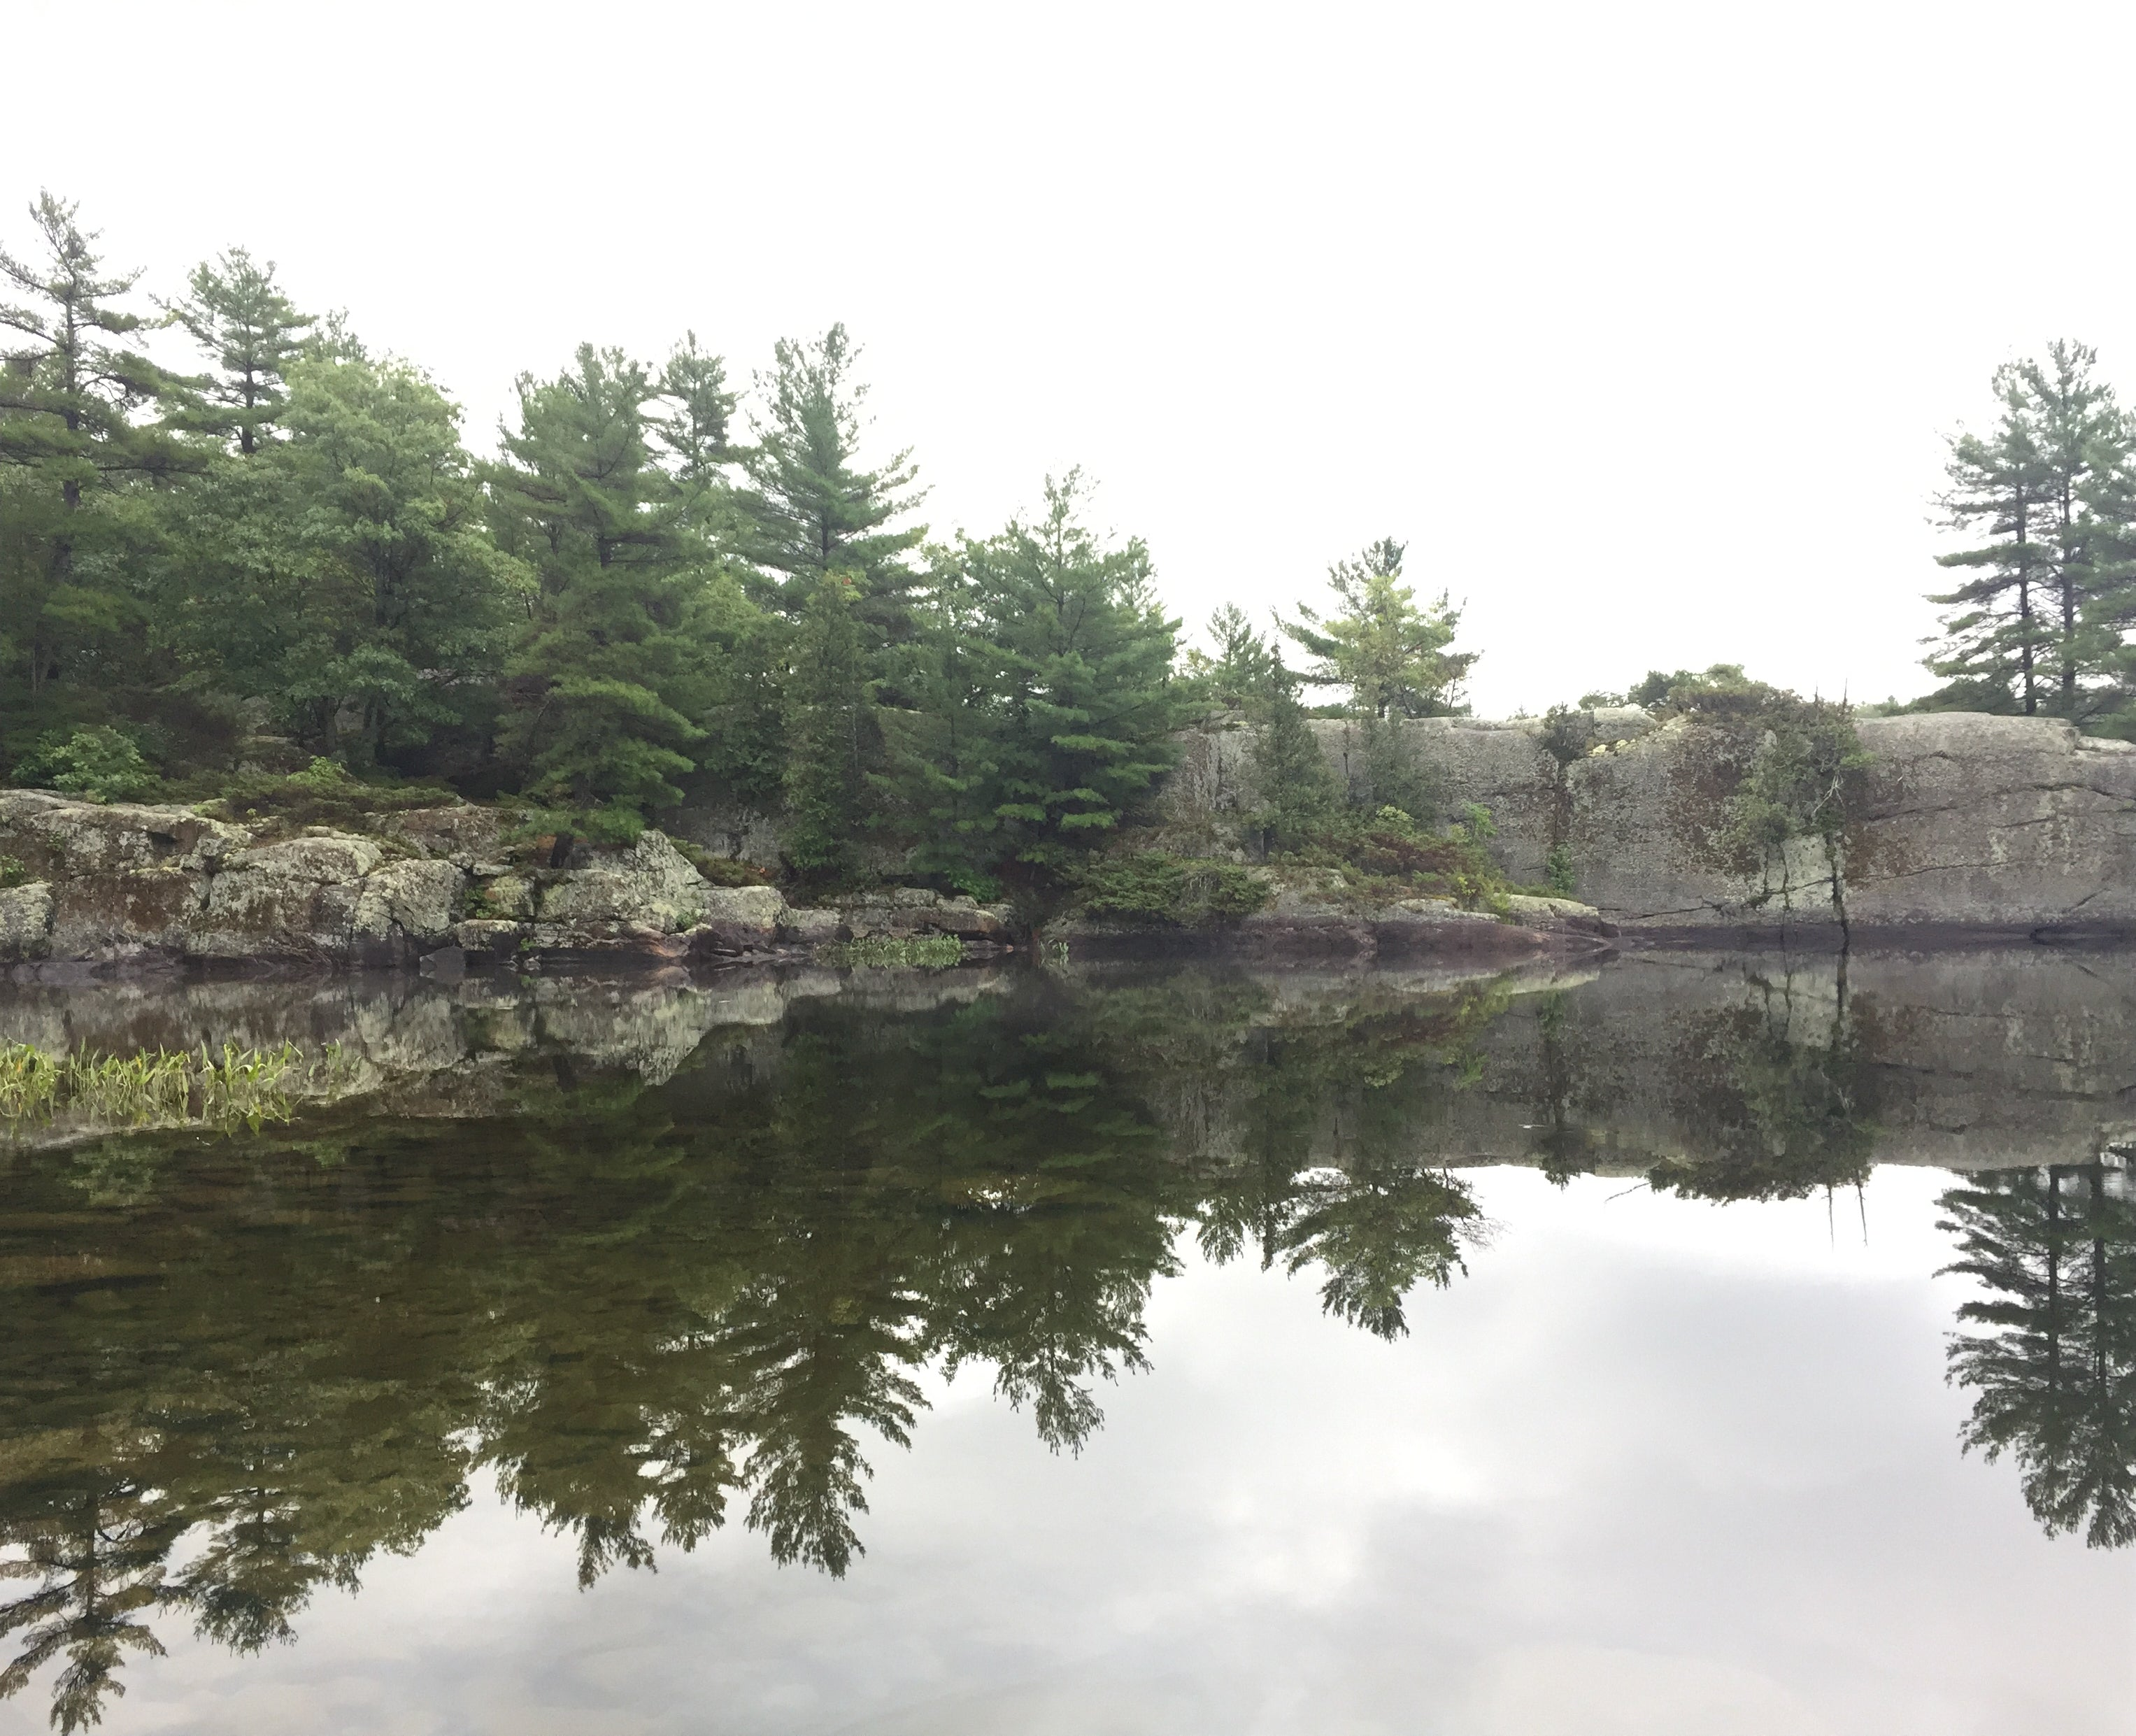 peaceful scene of trees, lake and mossy rock on a calm misty day at Massausga Provincial Park